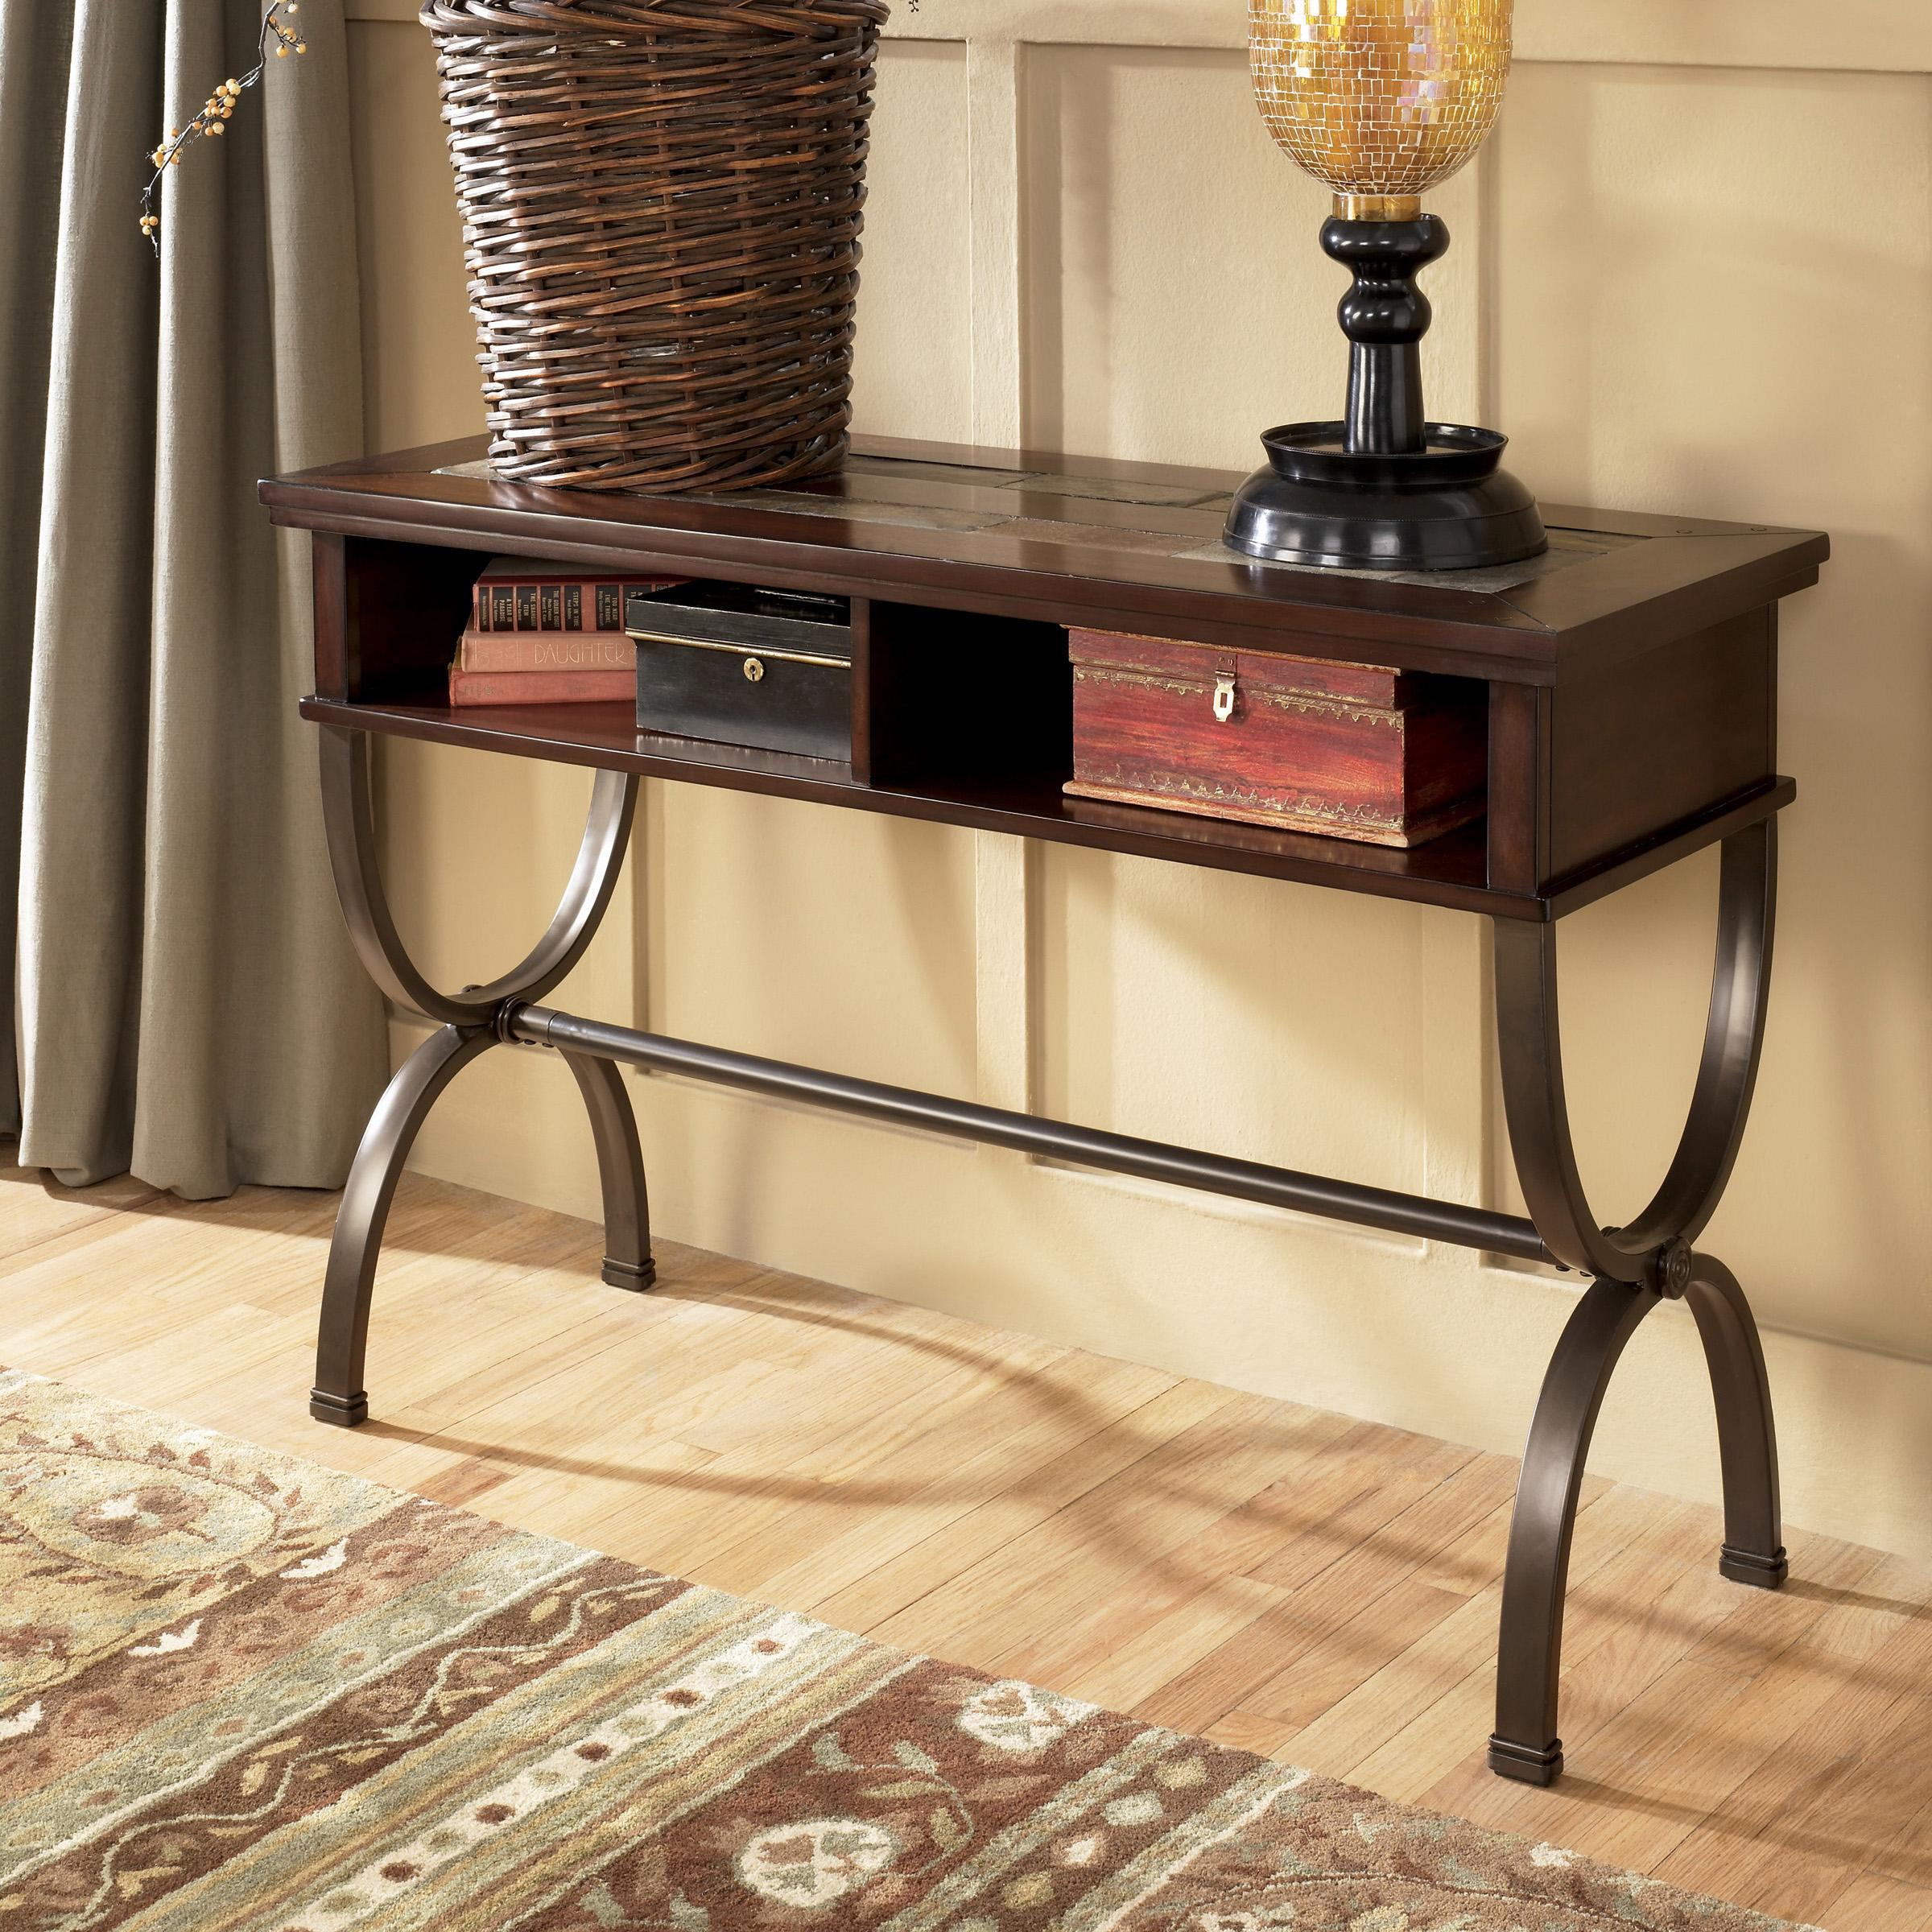 Sofa Console Table with Slate Inlay and Metal Base by Signature